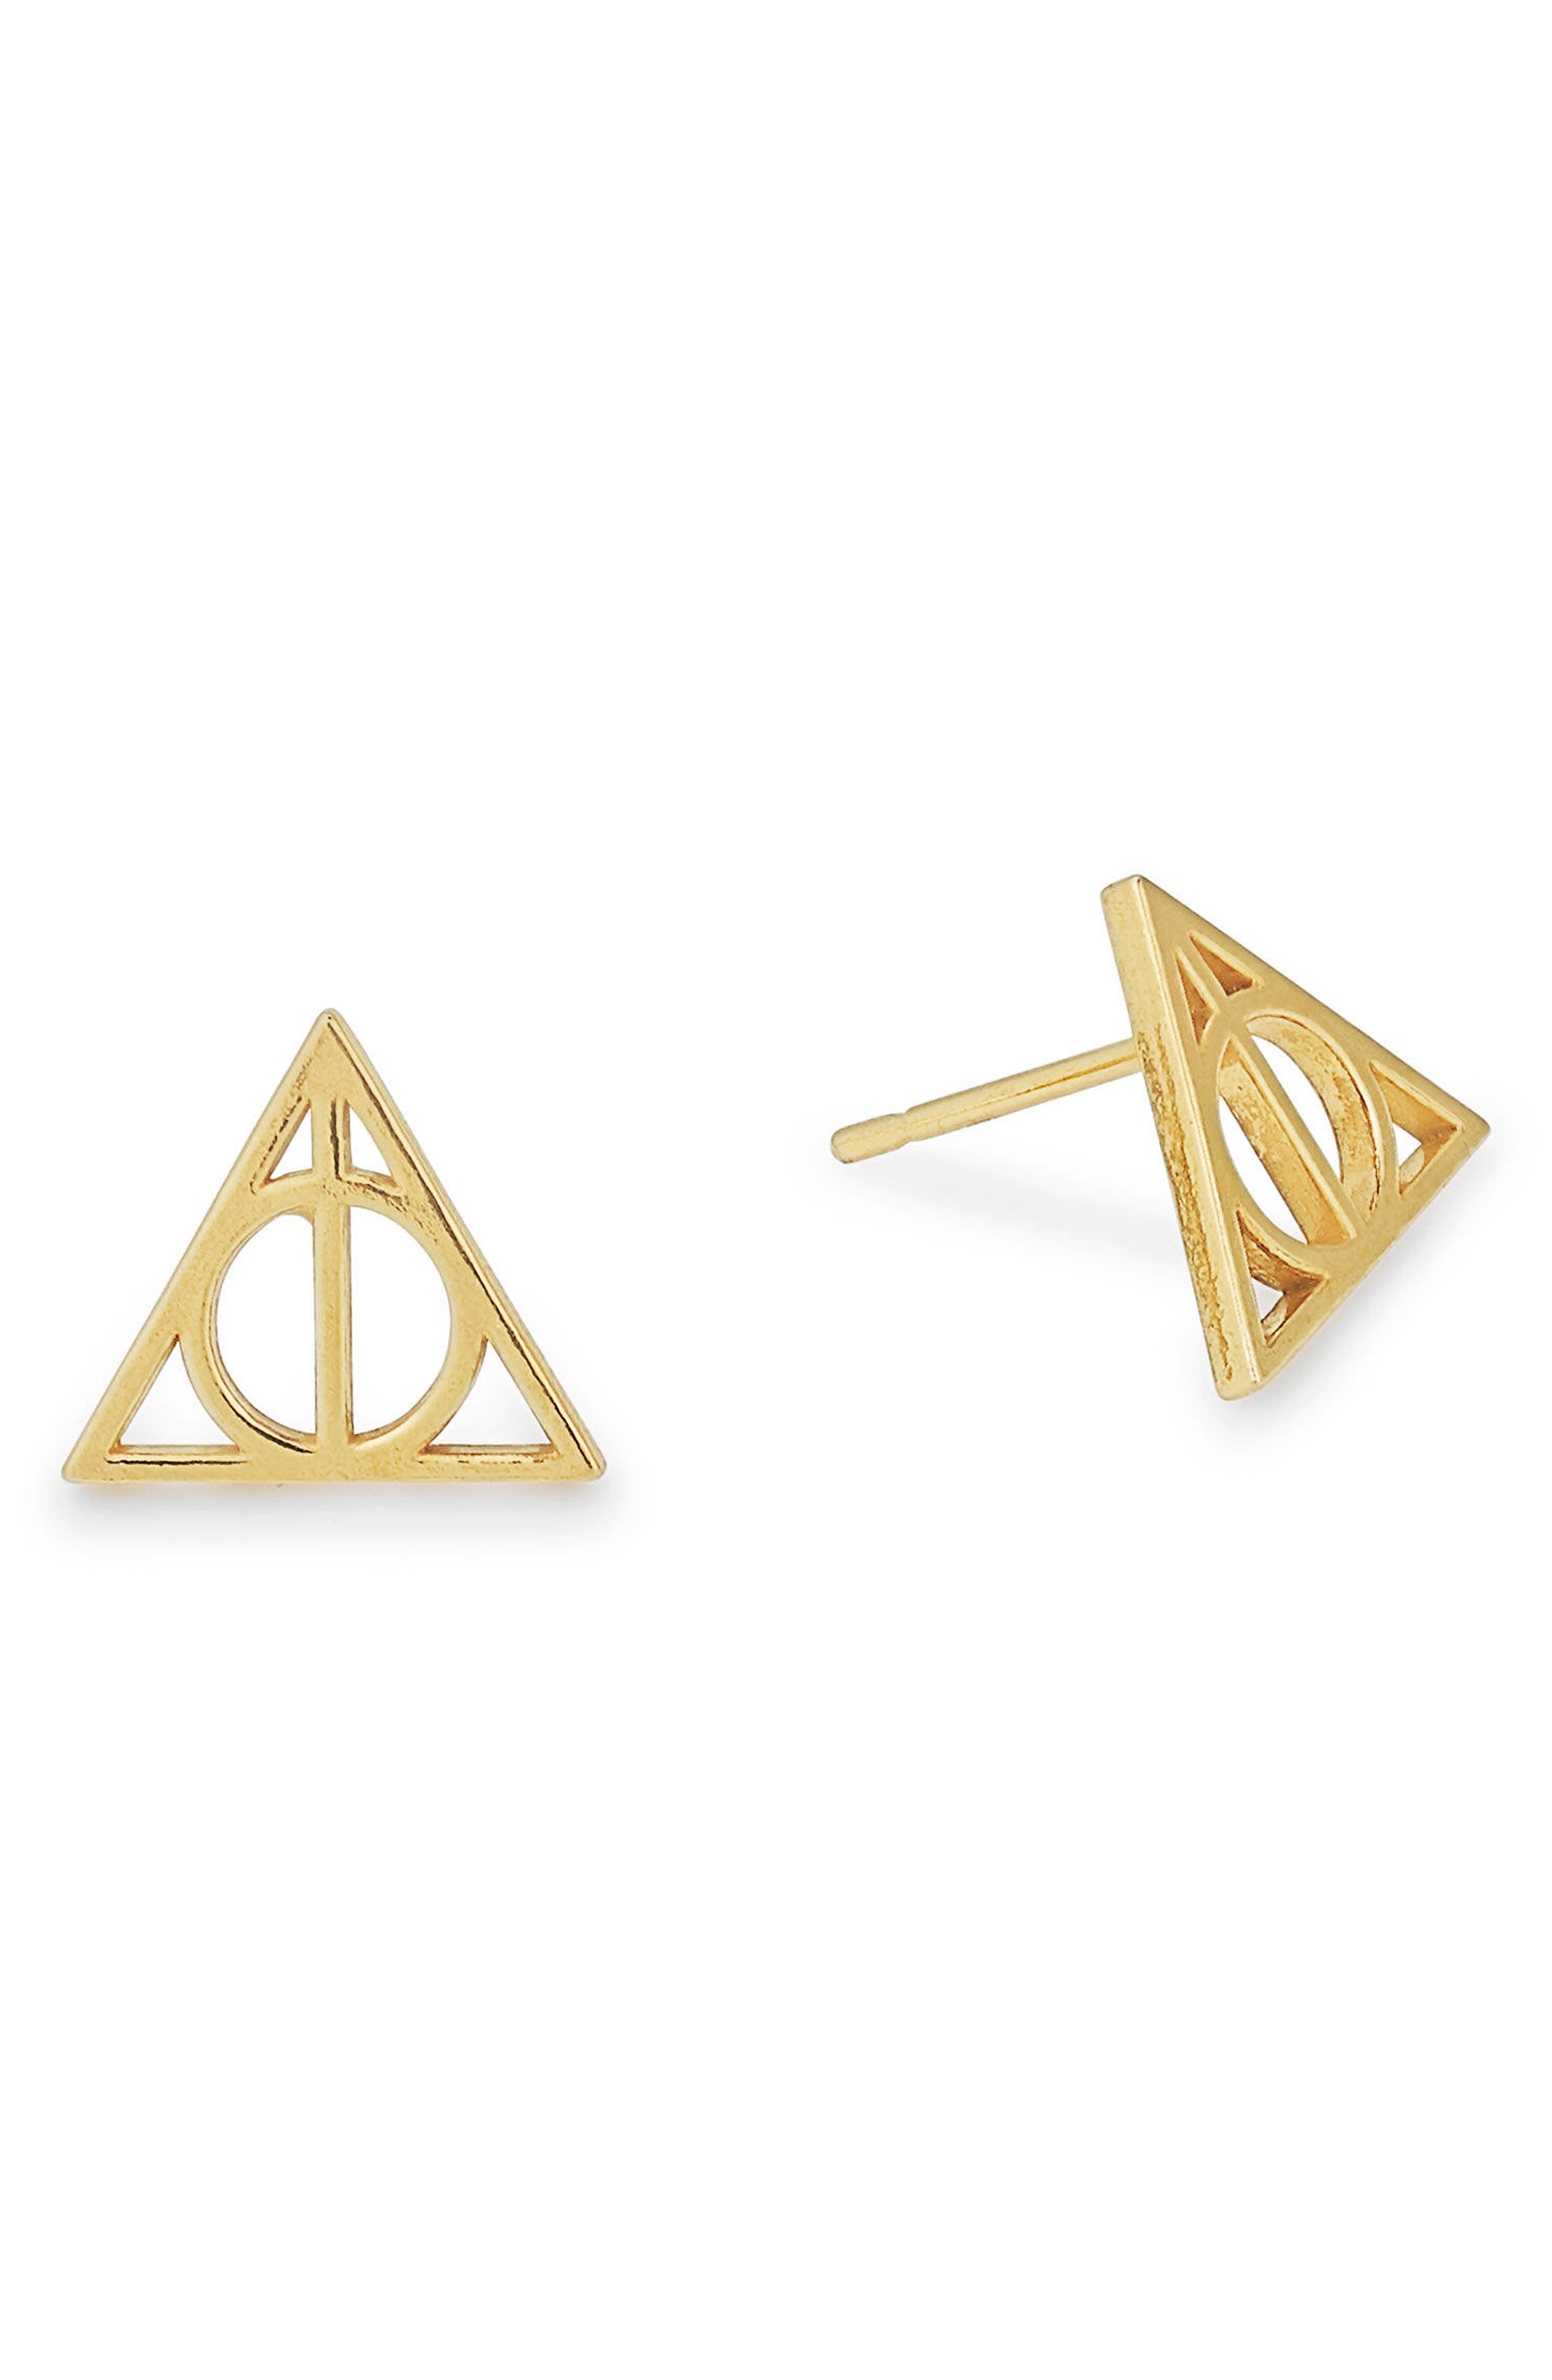 Main Image - Alex and Ani Harry Potter™ Deathly Hallows™ Earrings